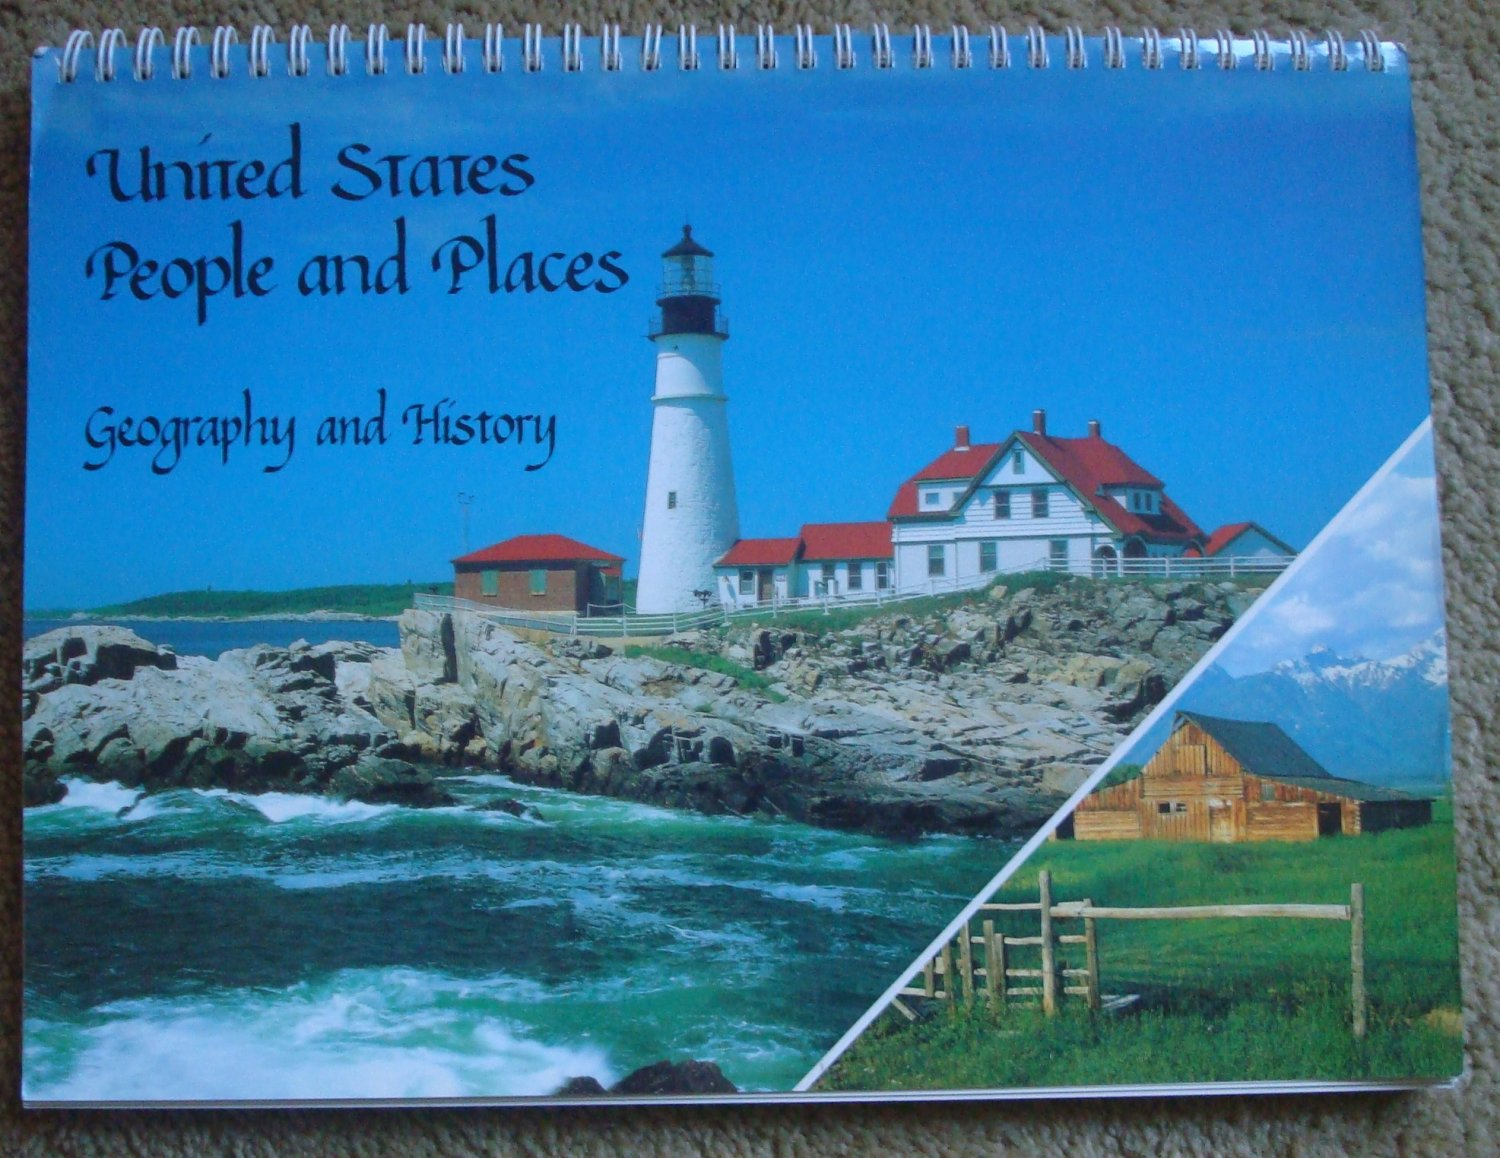 United States People and Places: Geography and History